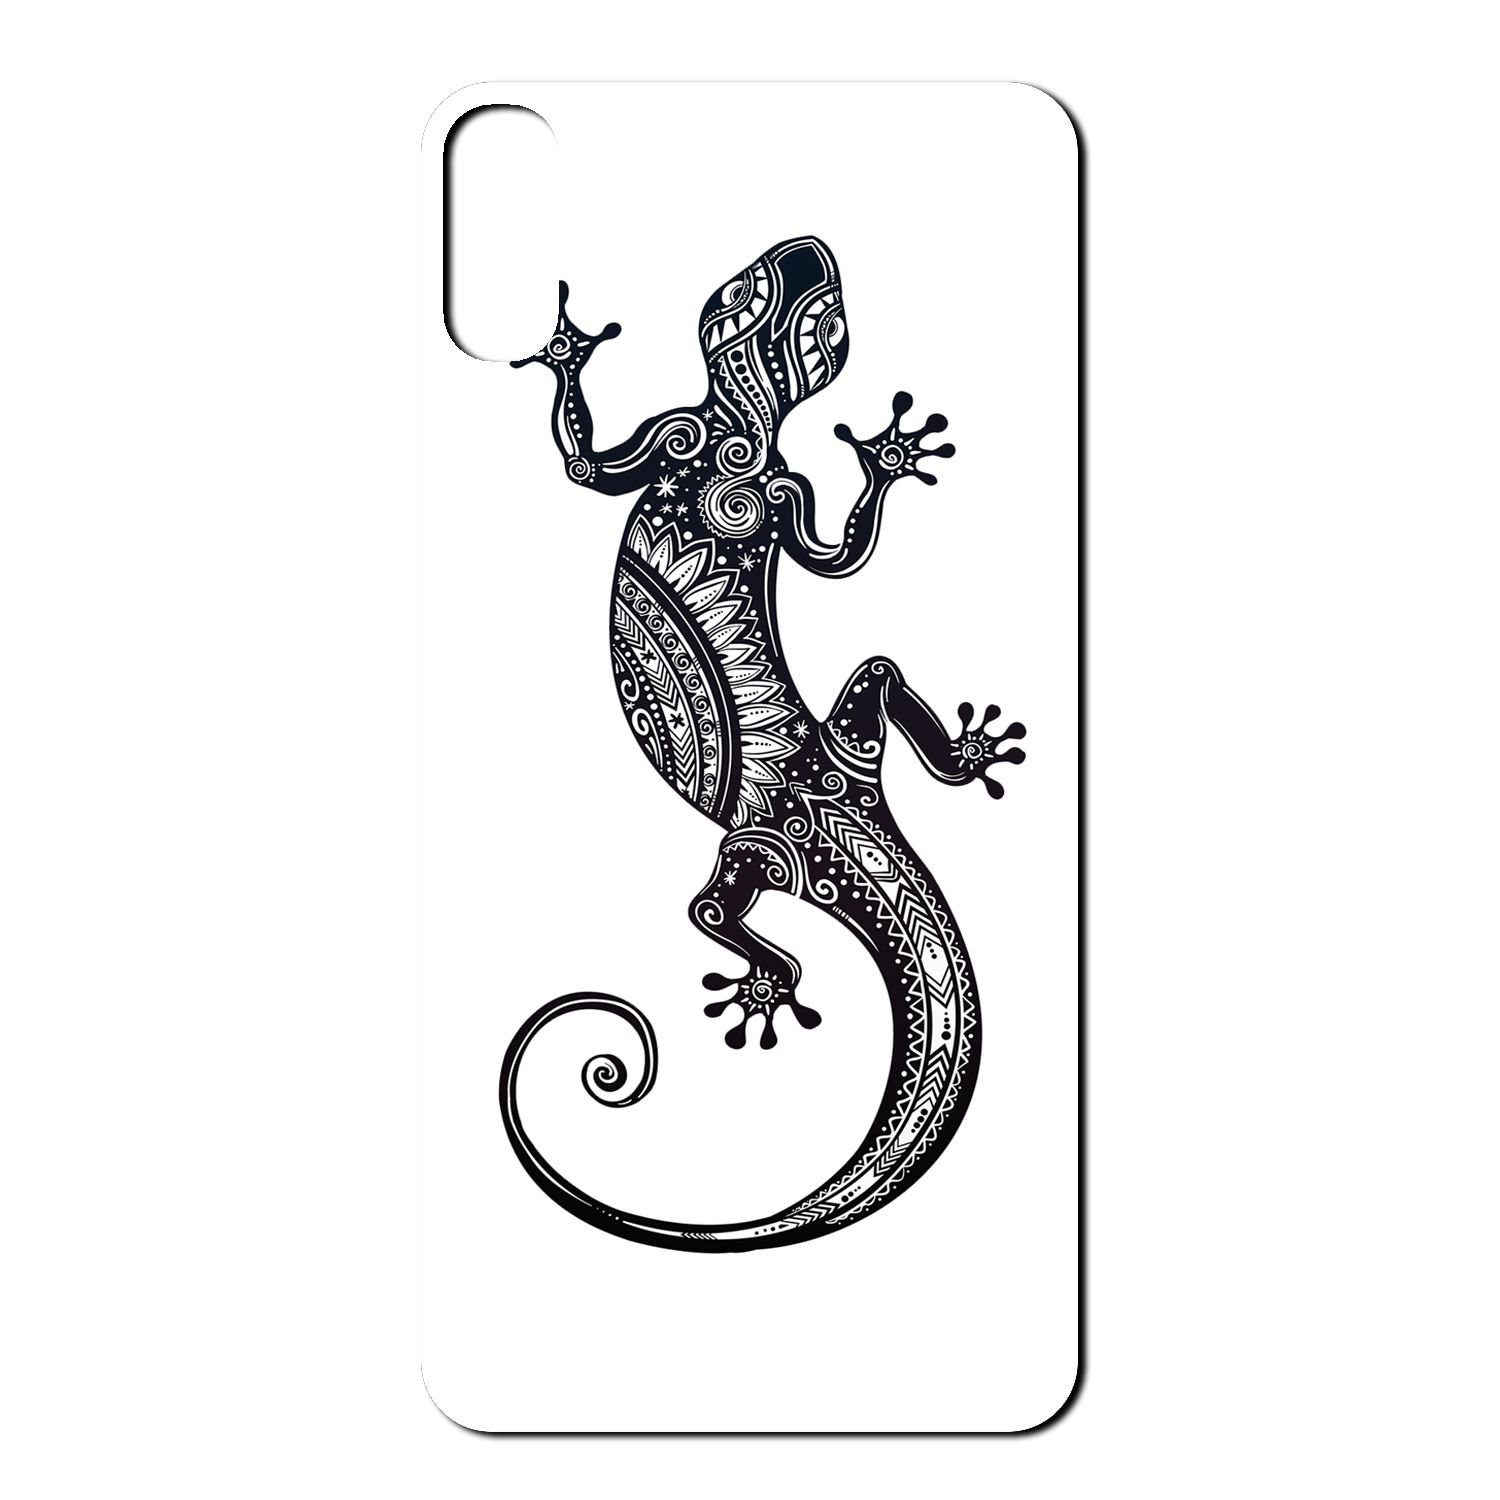 Computers/tablets & Networking Tablet & Ebook Reader Accs S9351 Discounts Price Reptile Lizard Print Flip Case Cover For Apple Ipad